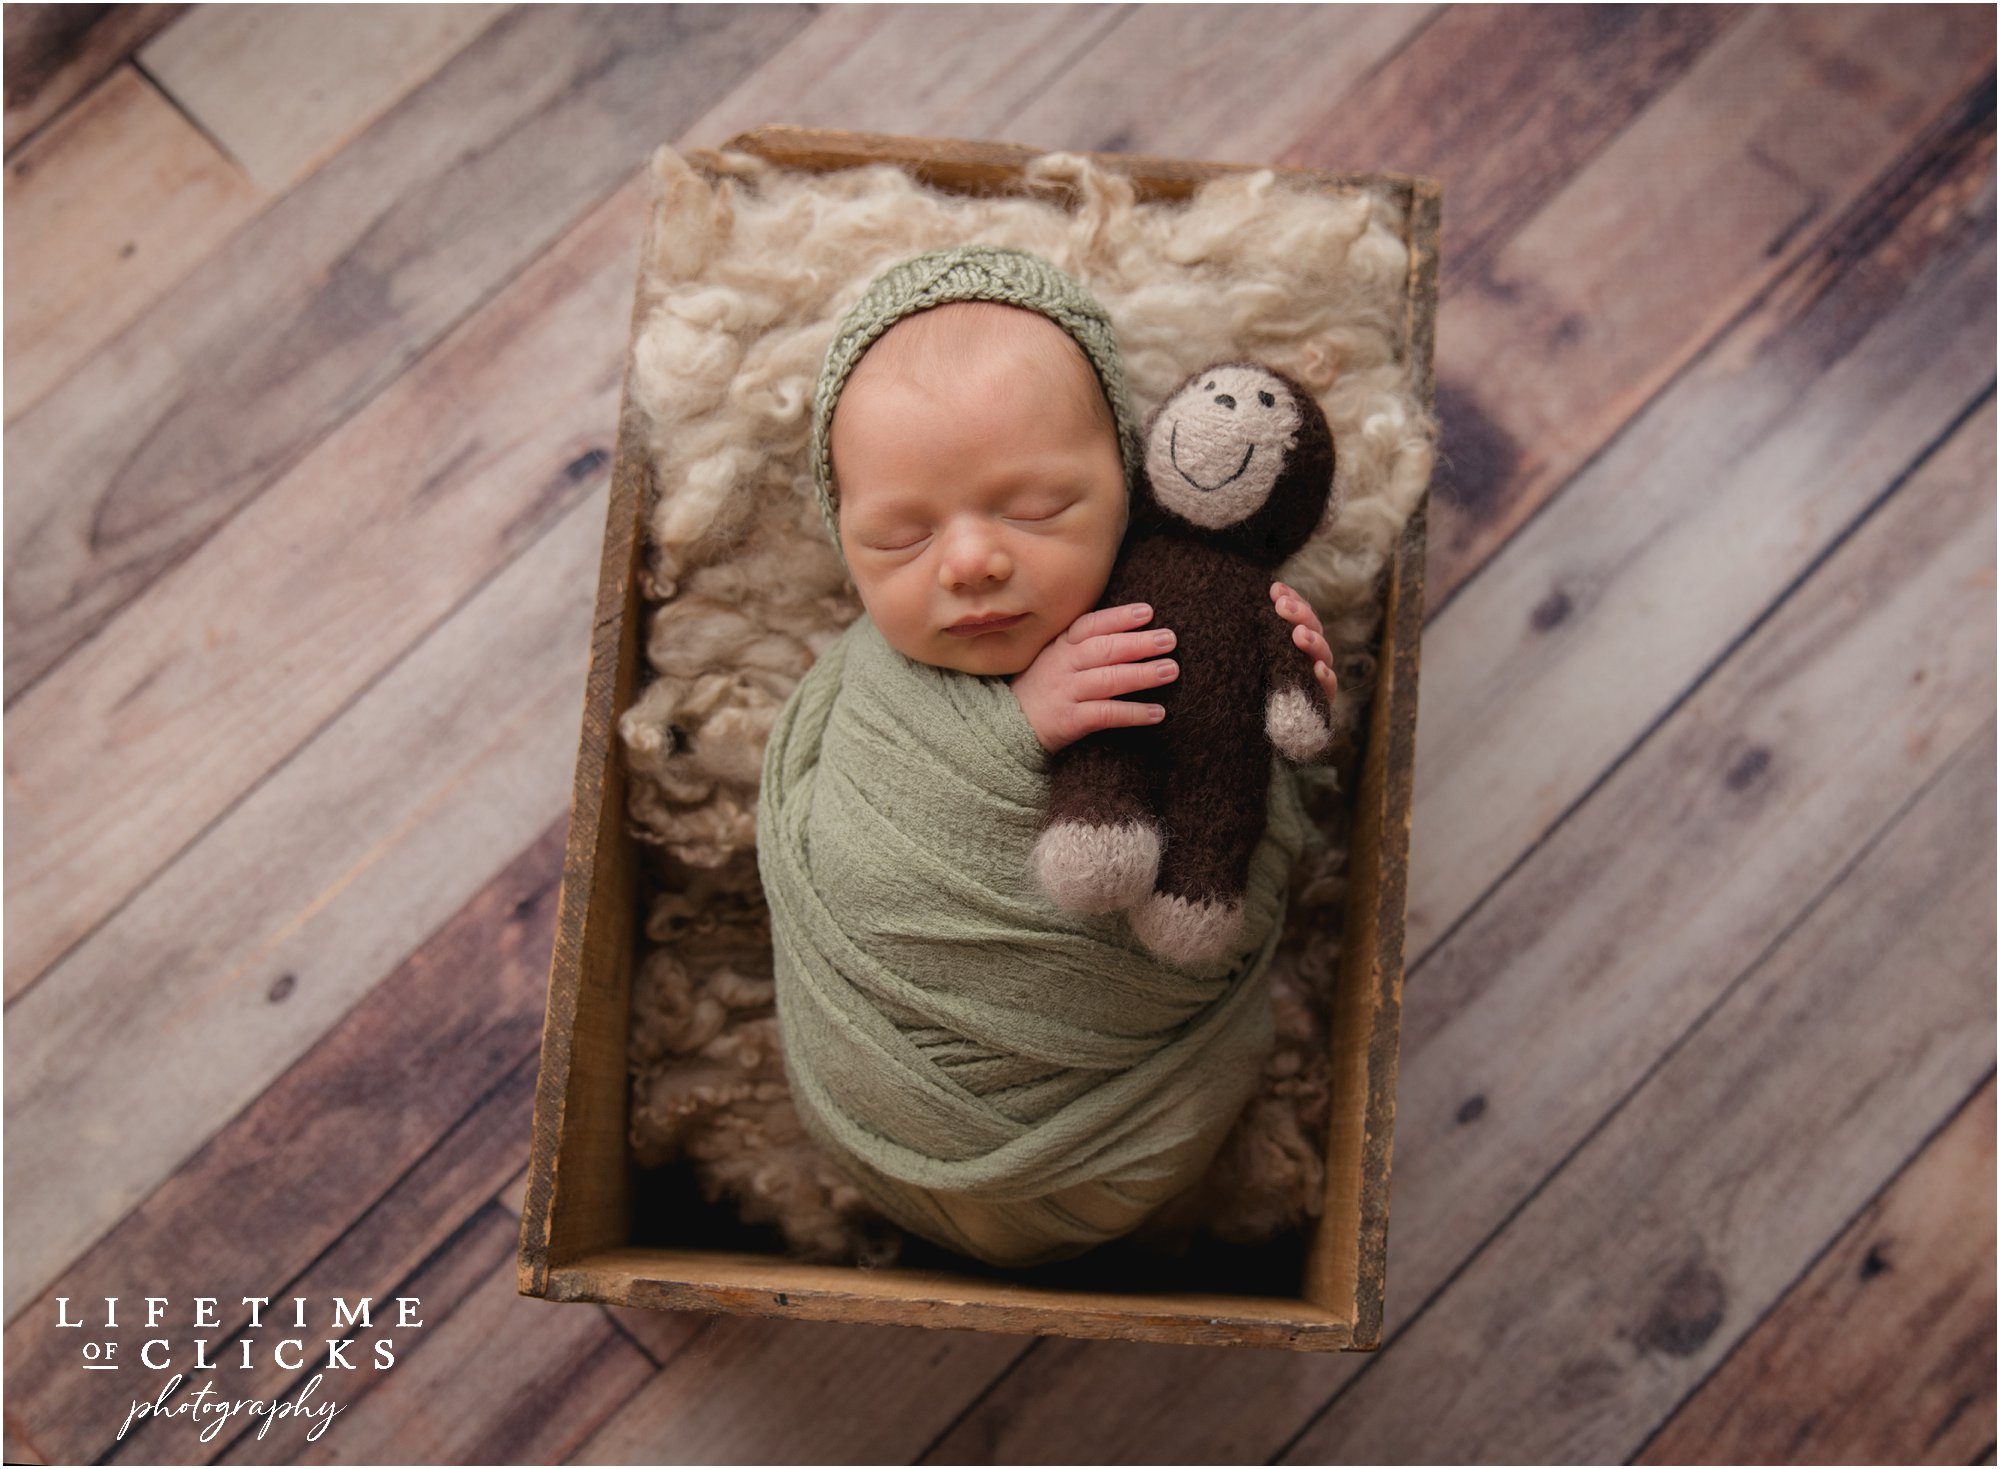 newborn boy asleep in a crate holding a cute monkey